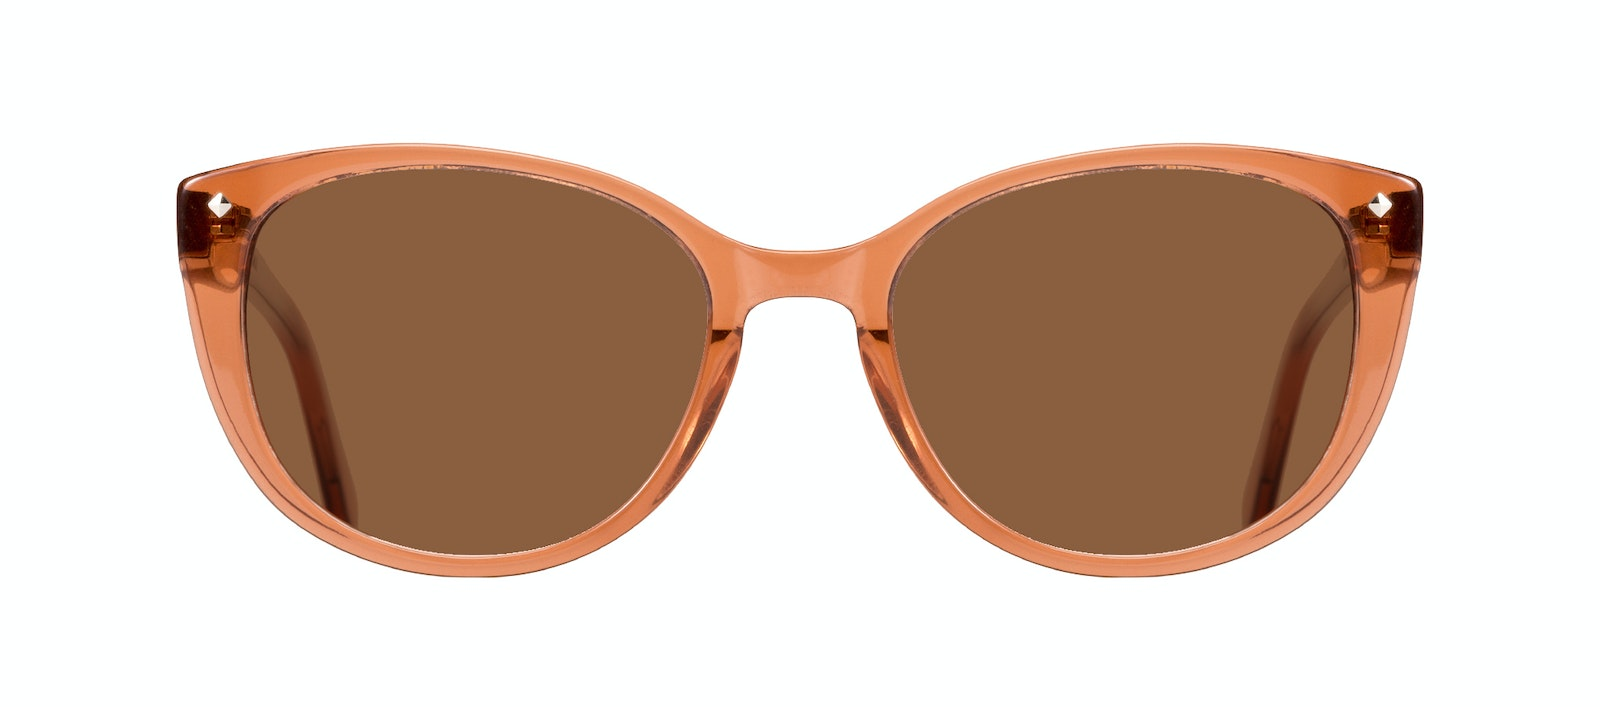 Affordable Fashion Glasses Cat Eye Sunglasses Women Mist Umber Front